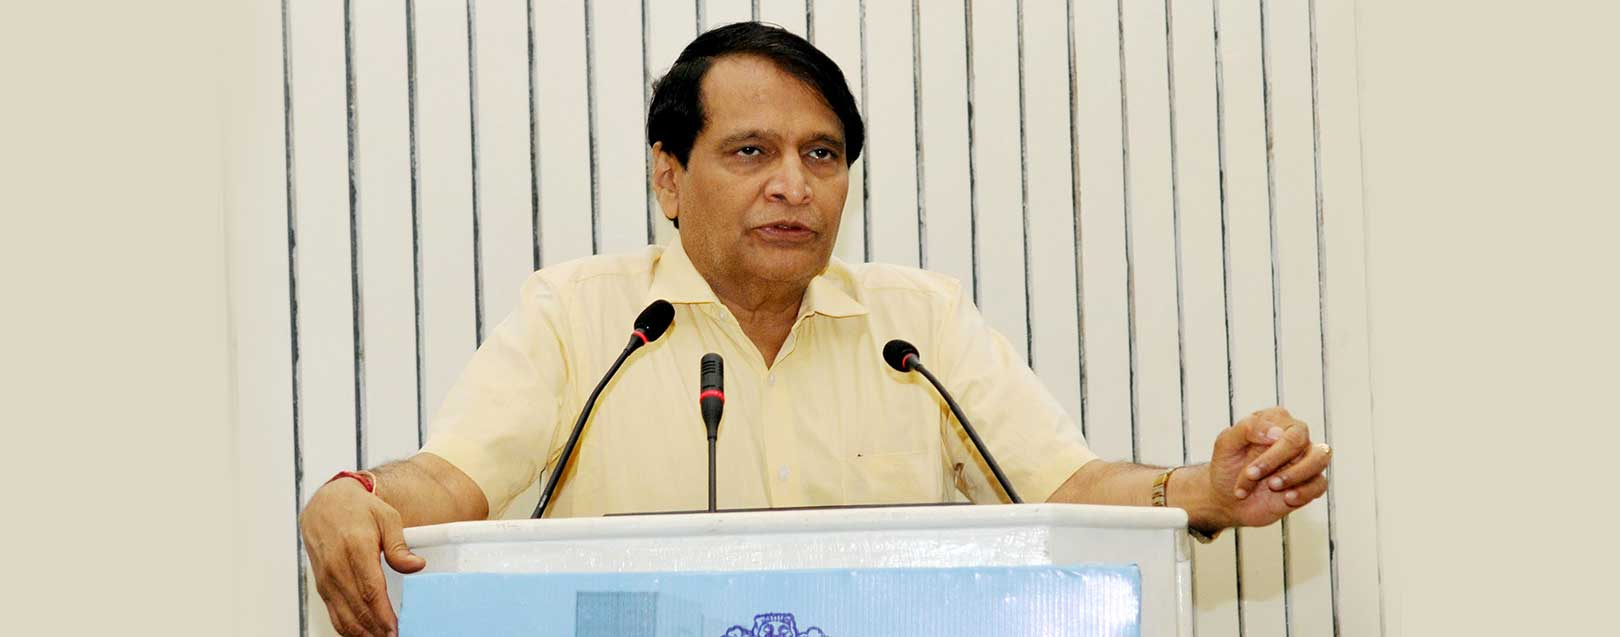 India to follow WTO rules, resolve issues through talks with US: Prabhu